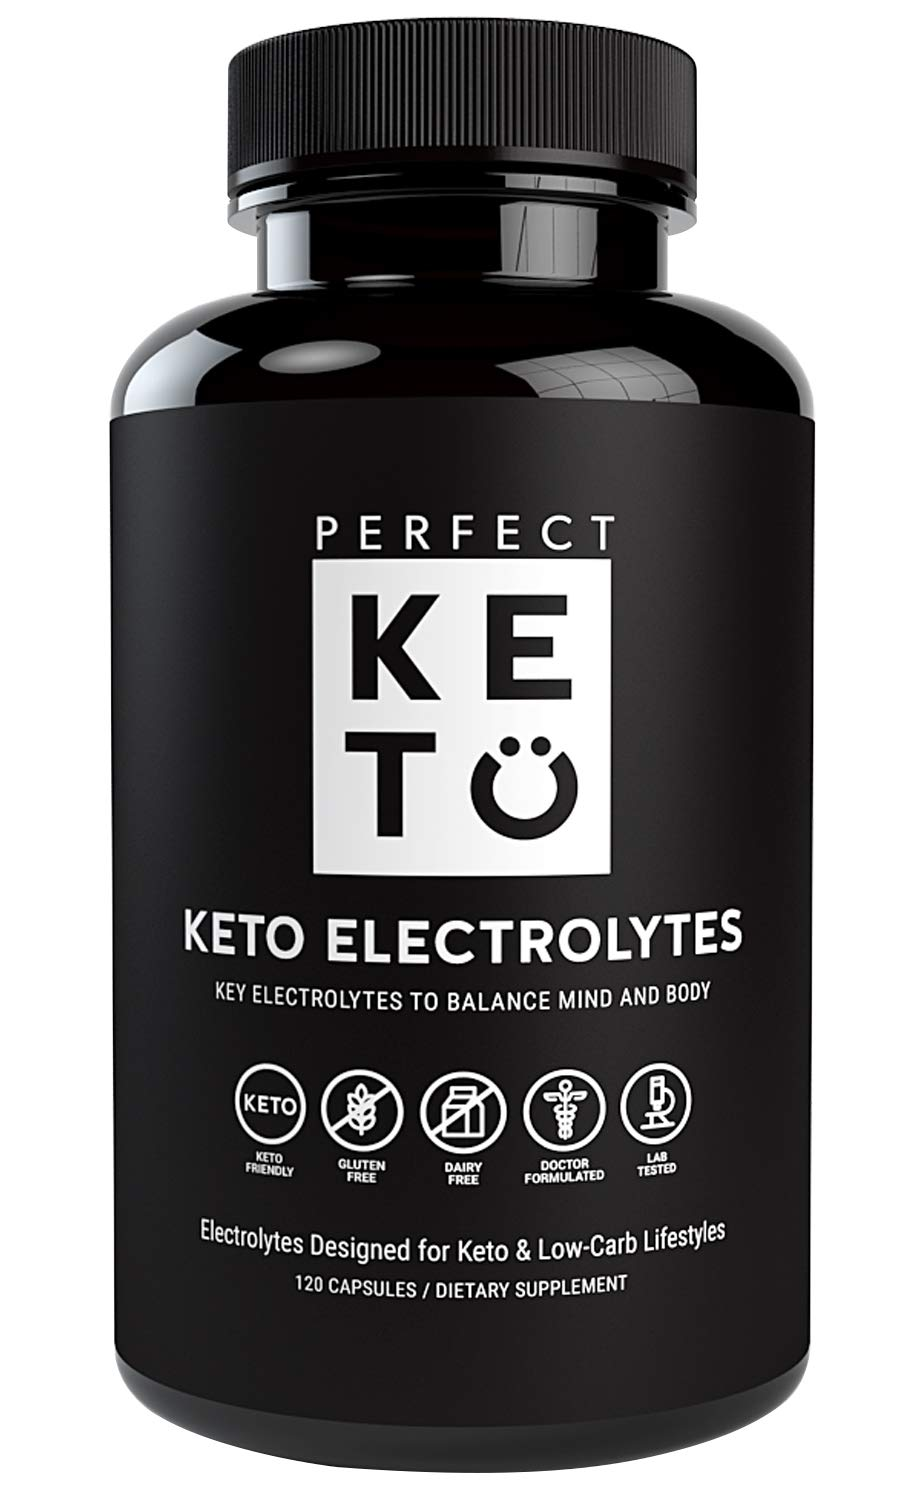 Perfect Keto Flu Electrolyte Supplement: Electrolytes Capsules for Low Carb Diet or Ketogenic Diet to Balance Mind & Body. Energy Supplements, Sodium, Potassium, Magnesium (1 Bottle, 120 Count)